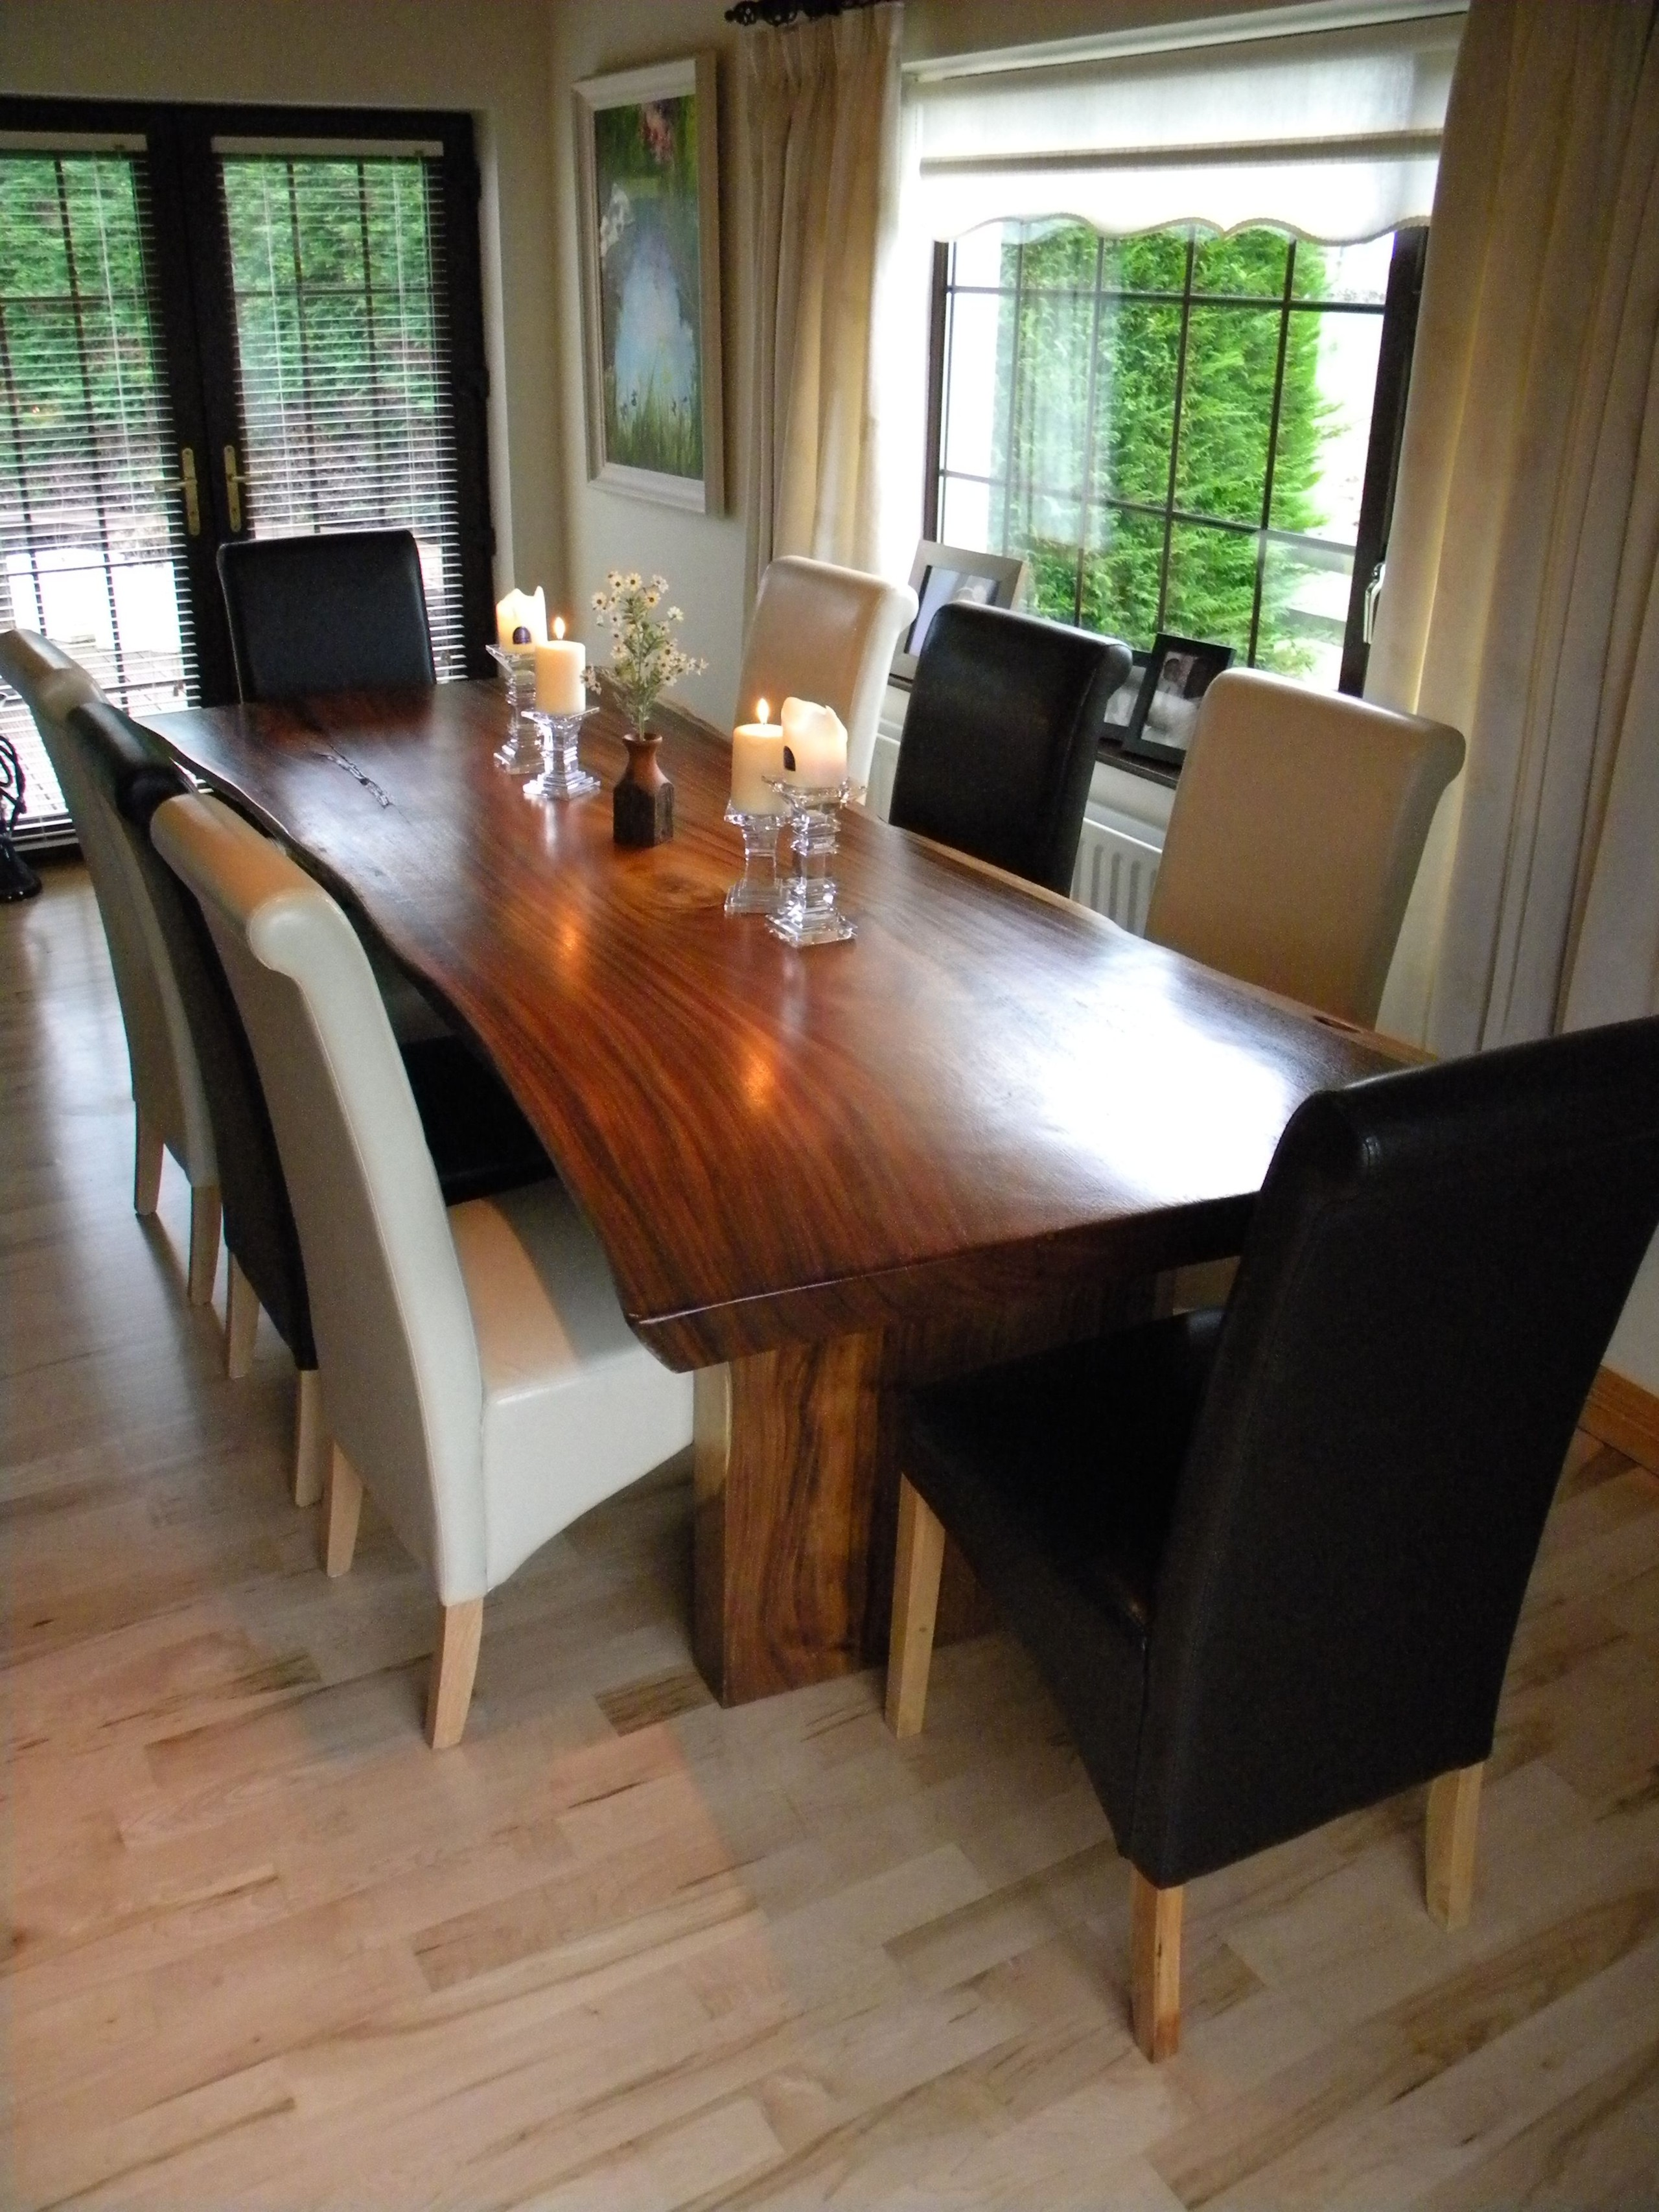 8 Seater Black Dining Table